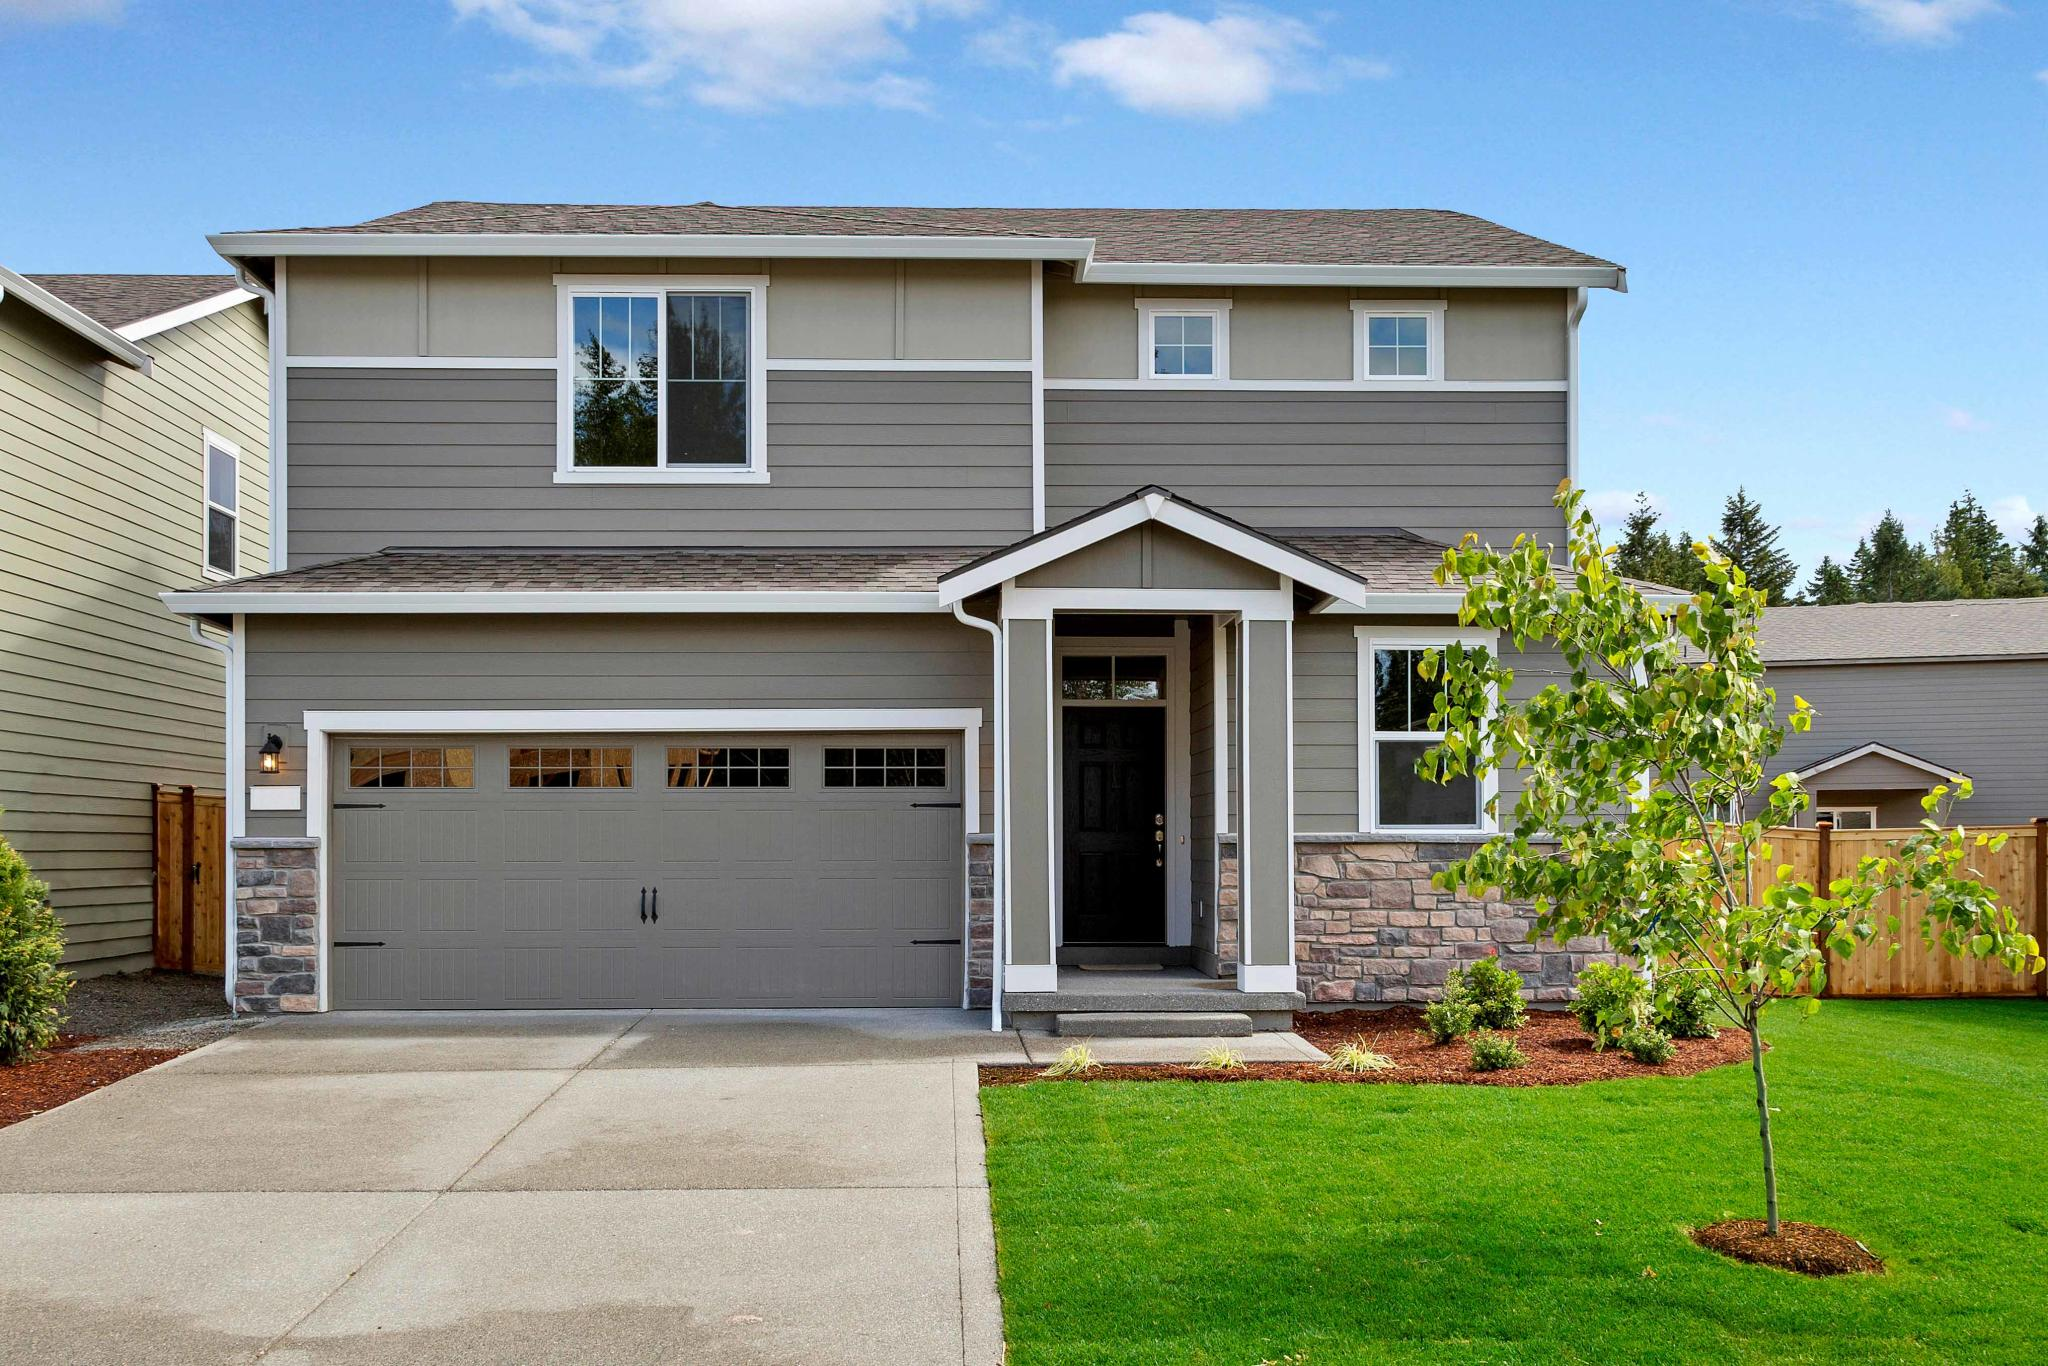 Kettle Plan For Sale Puyallup WA